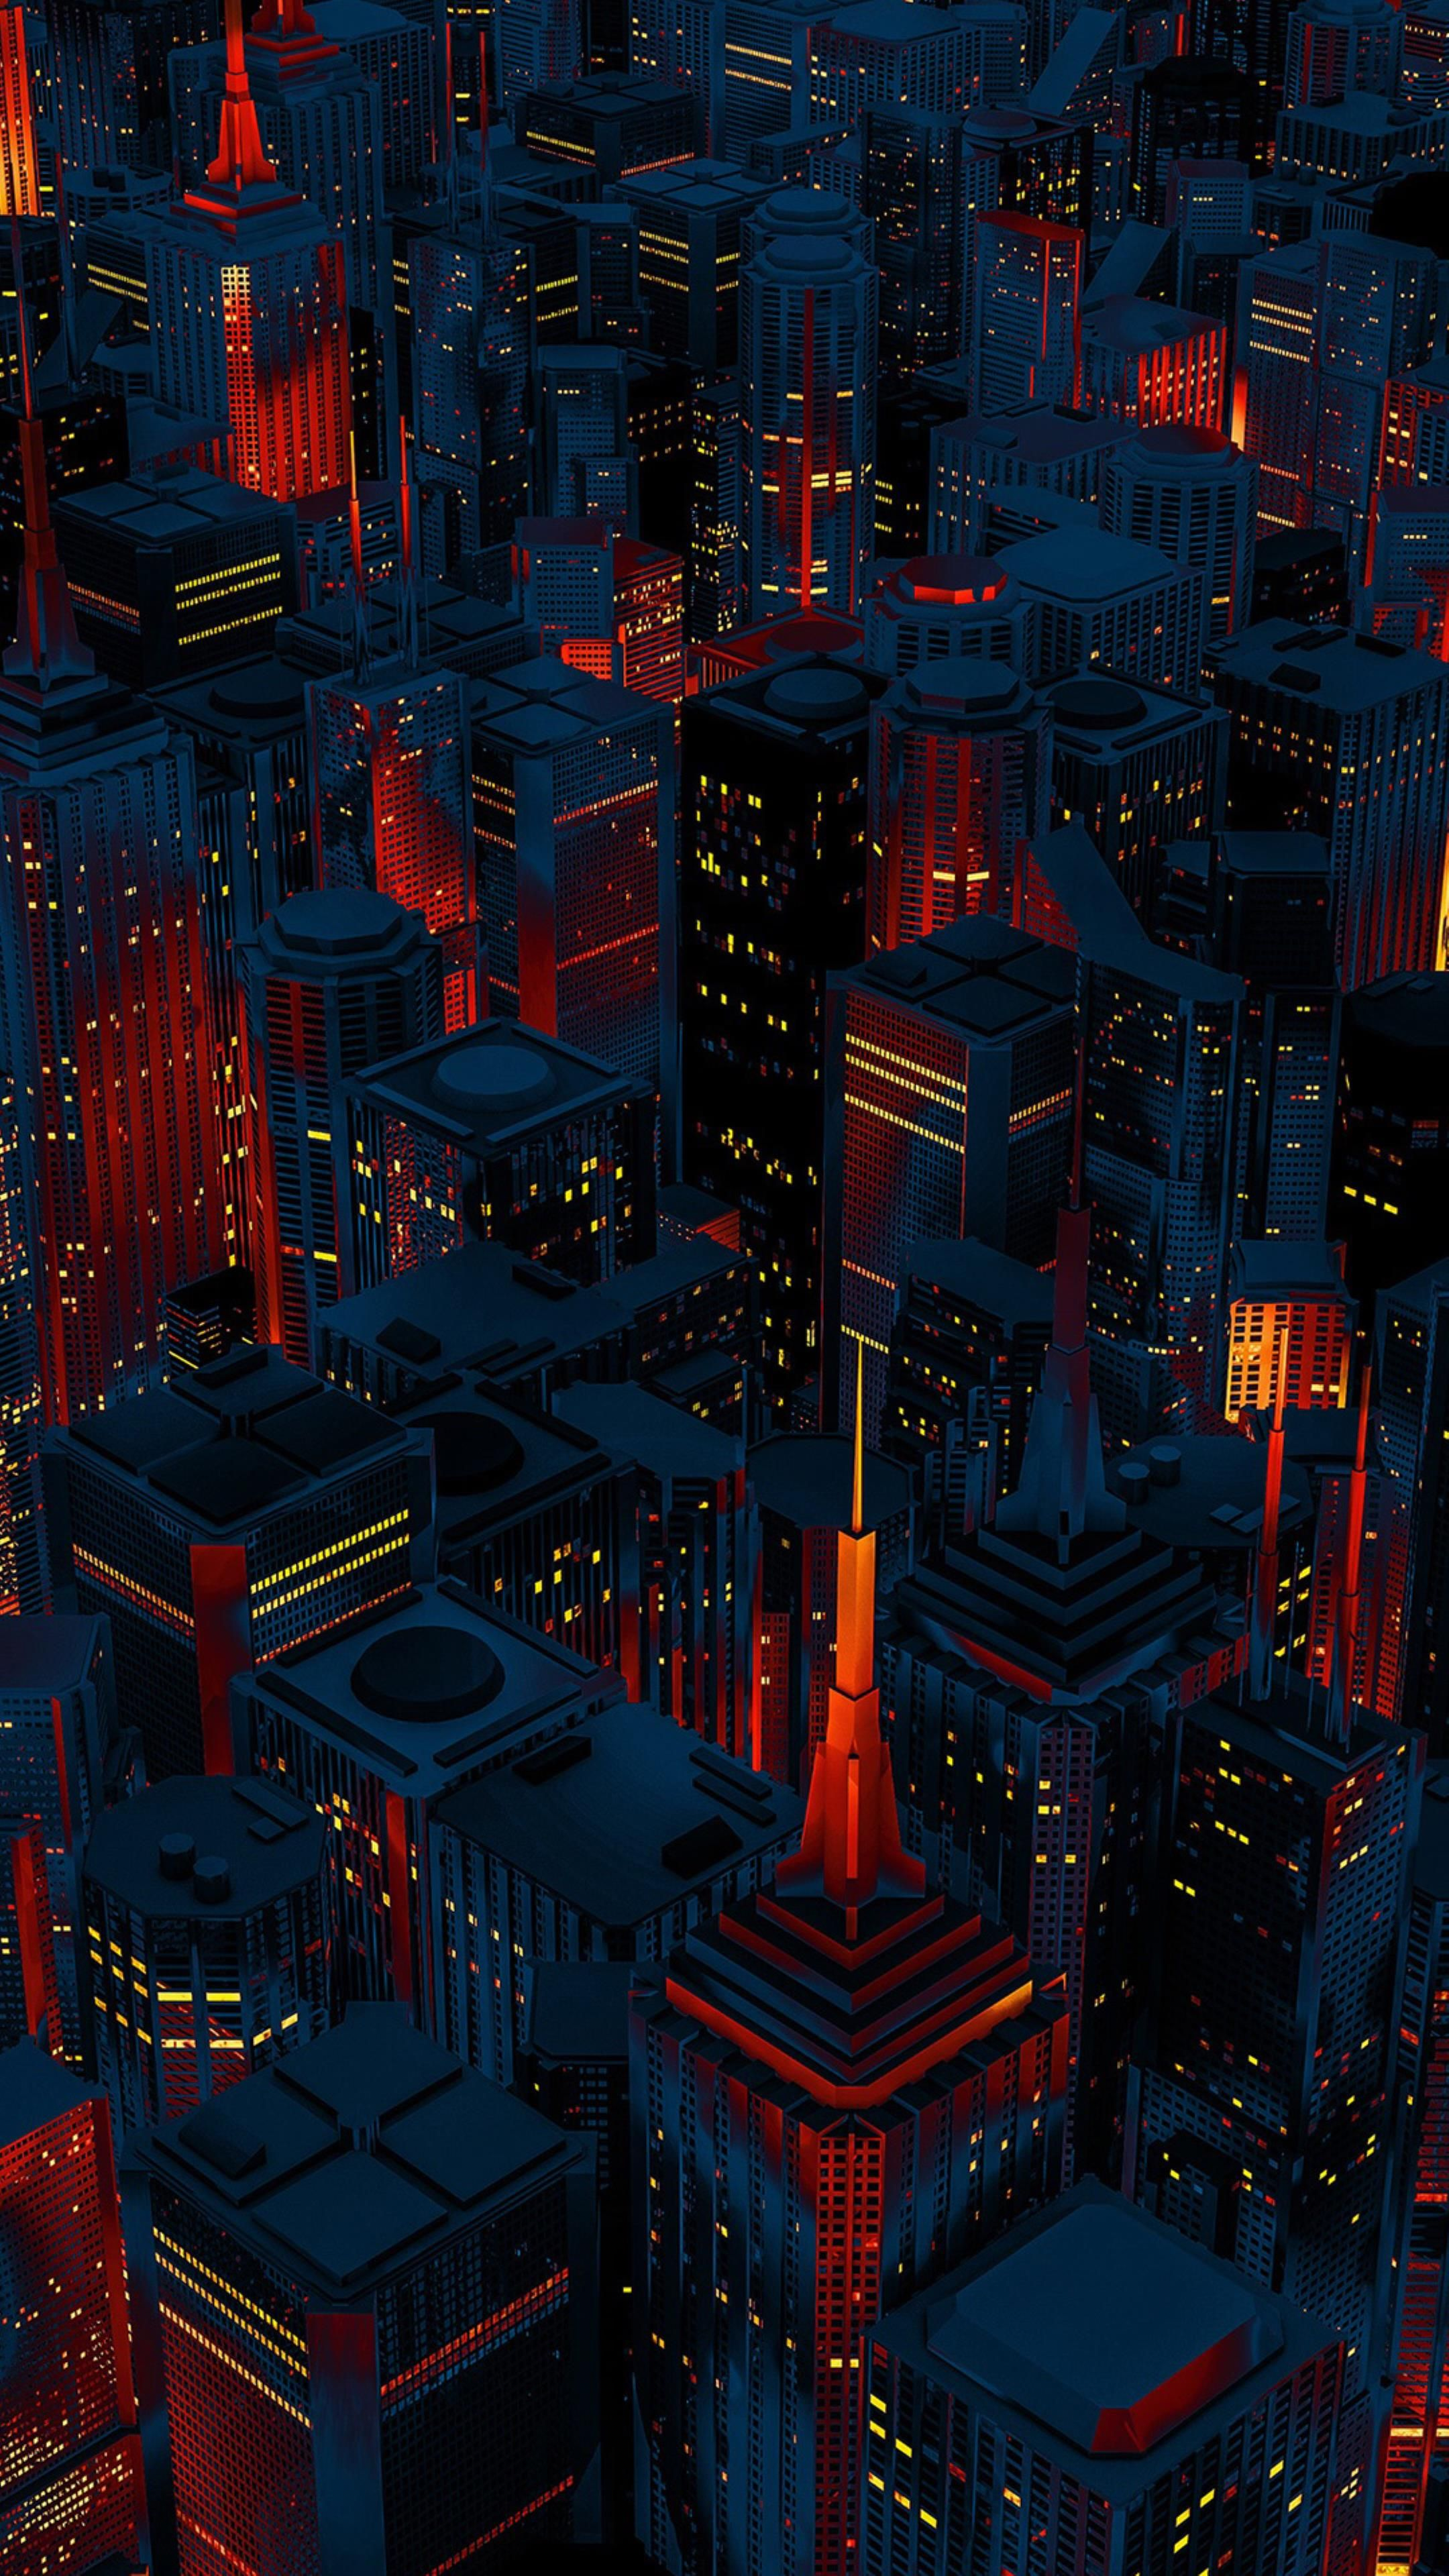 Amoled Architecture Wallpaper With Images Art Wallpaper City